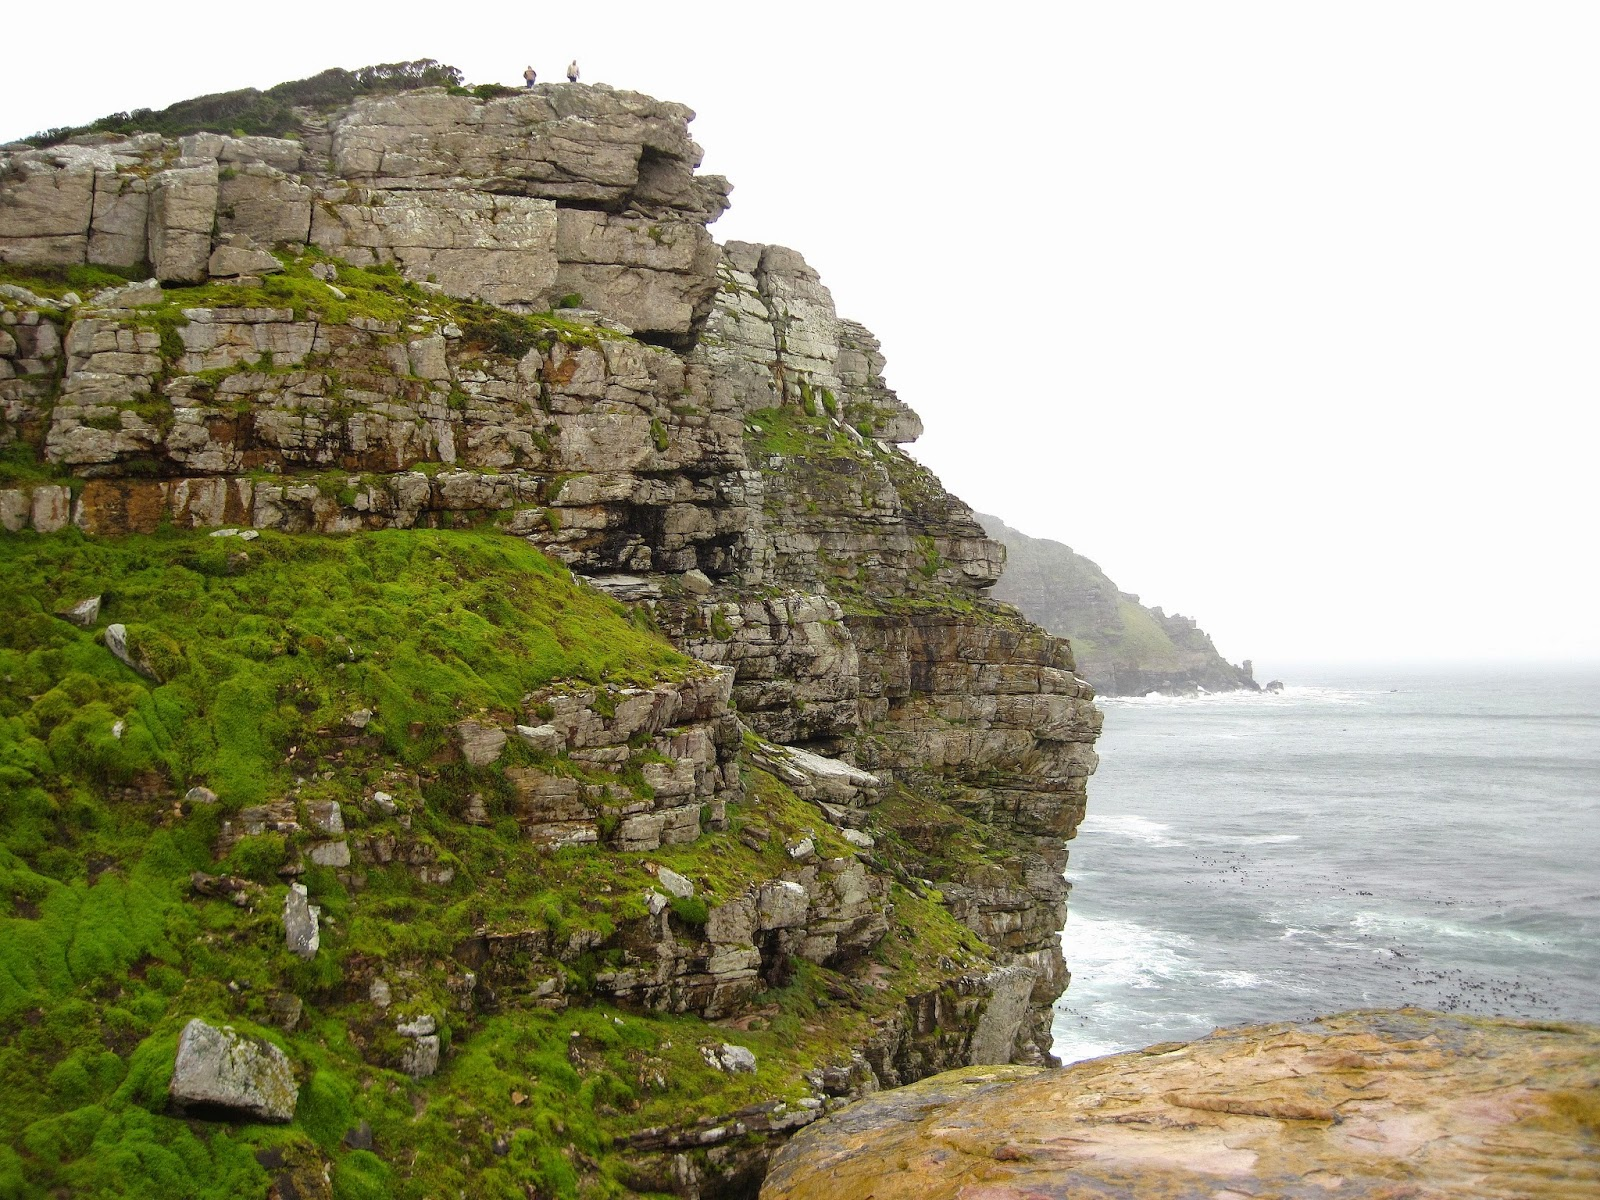 Cape Peninsula Cape of Good Hope